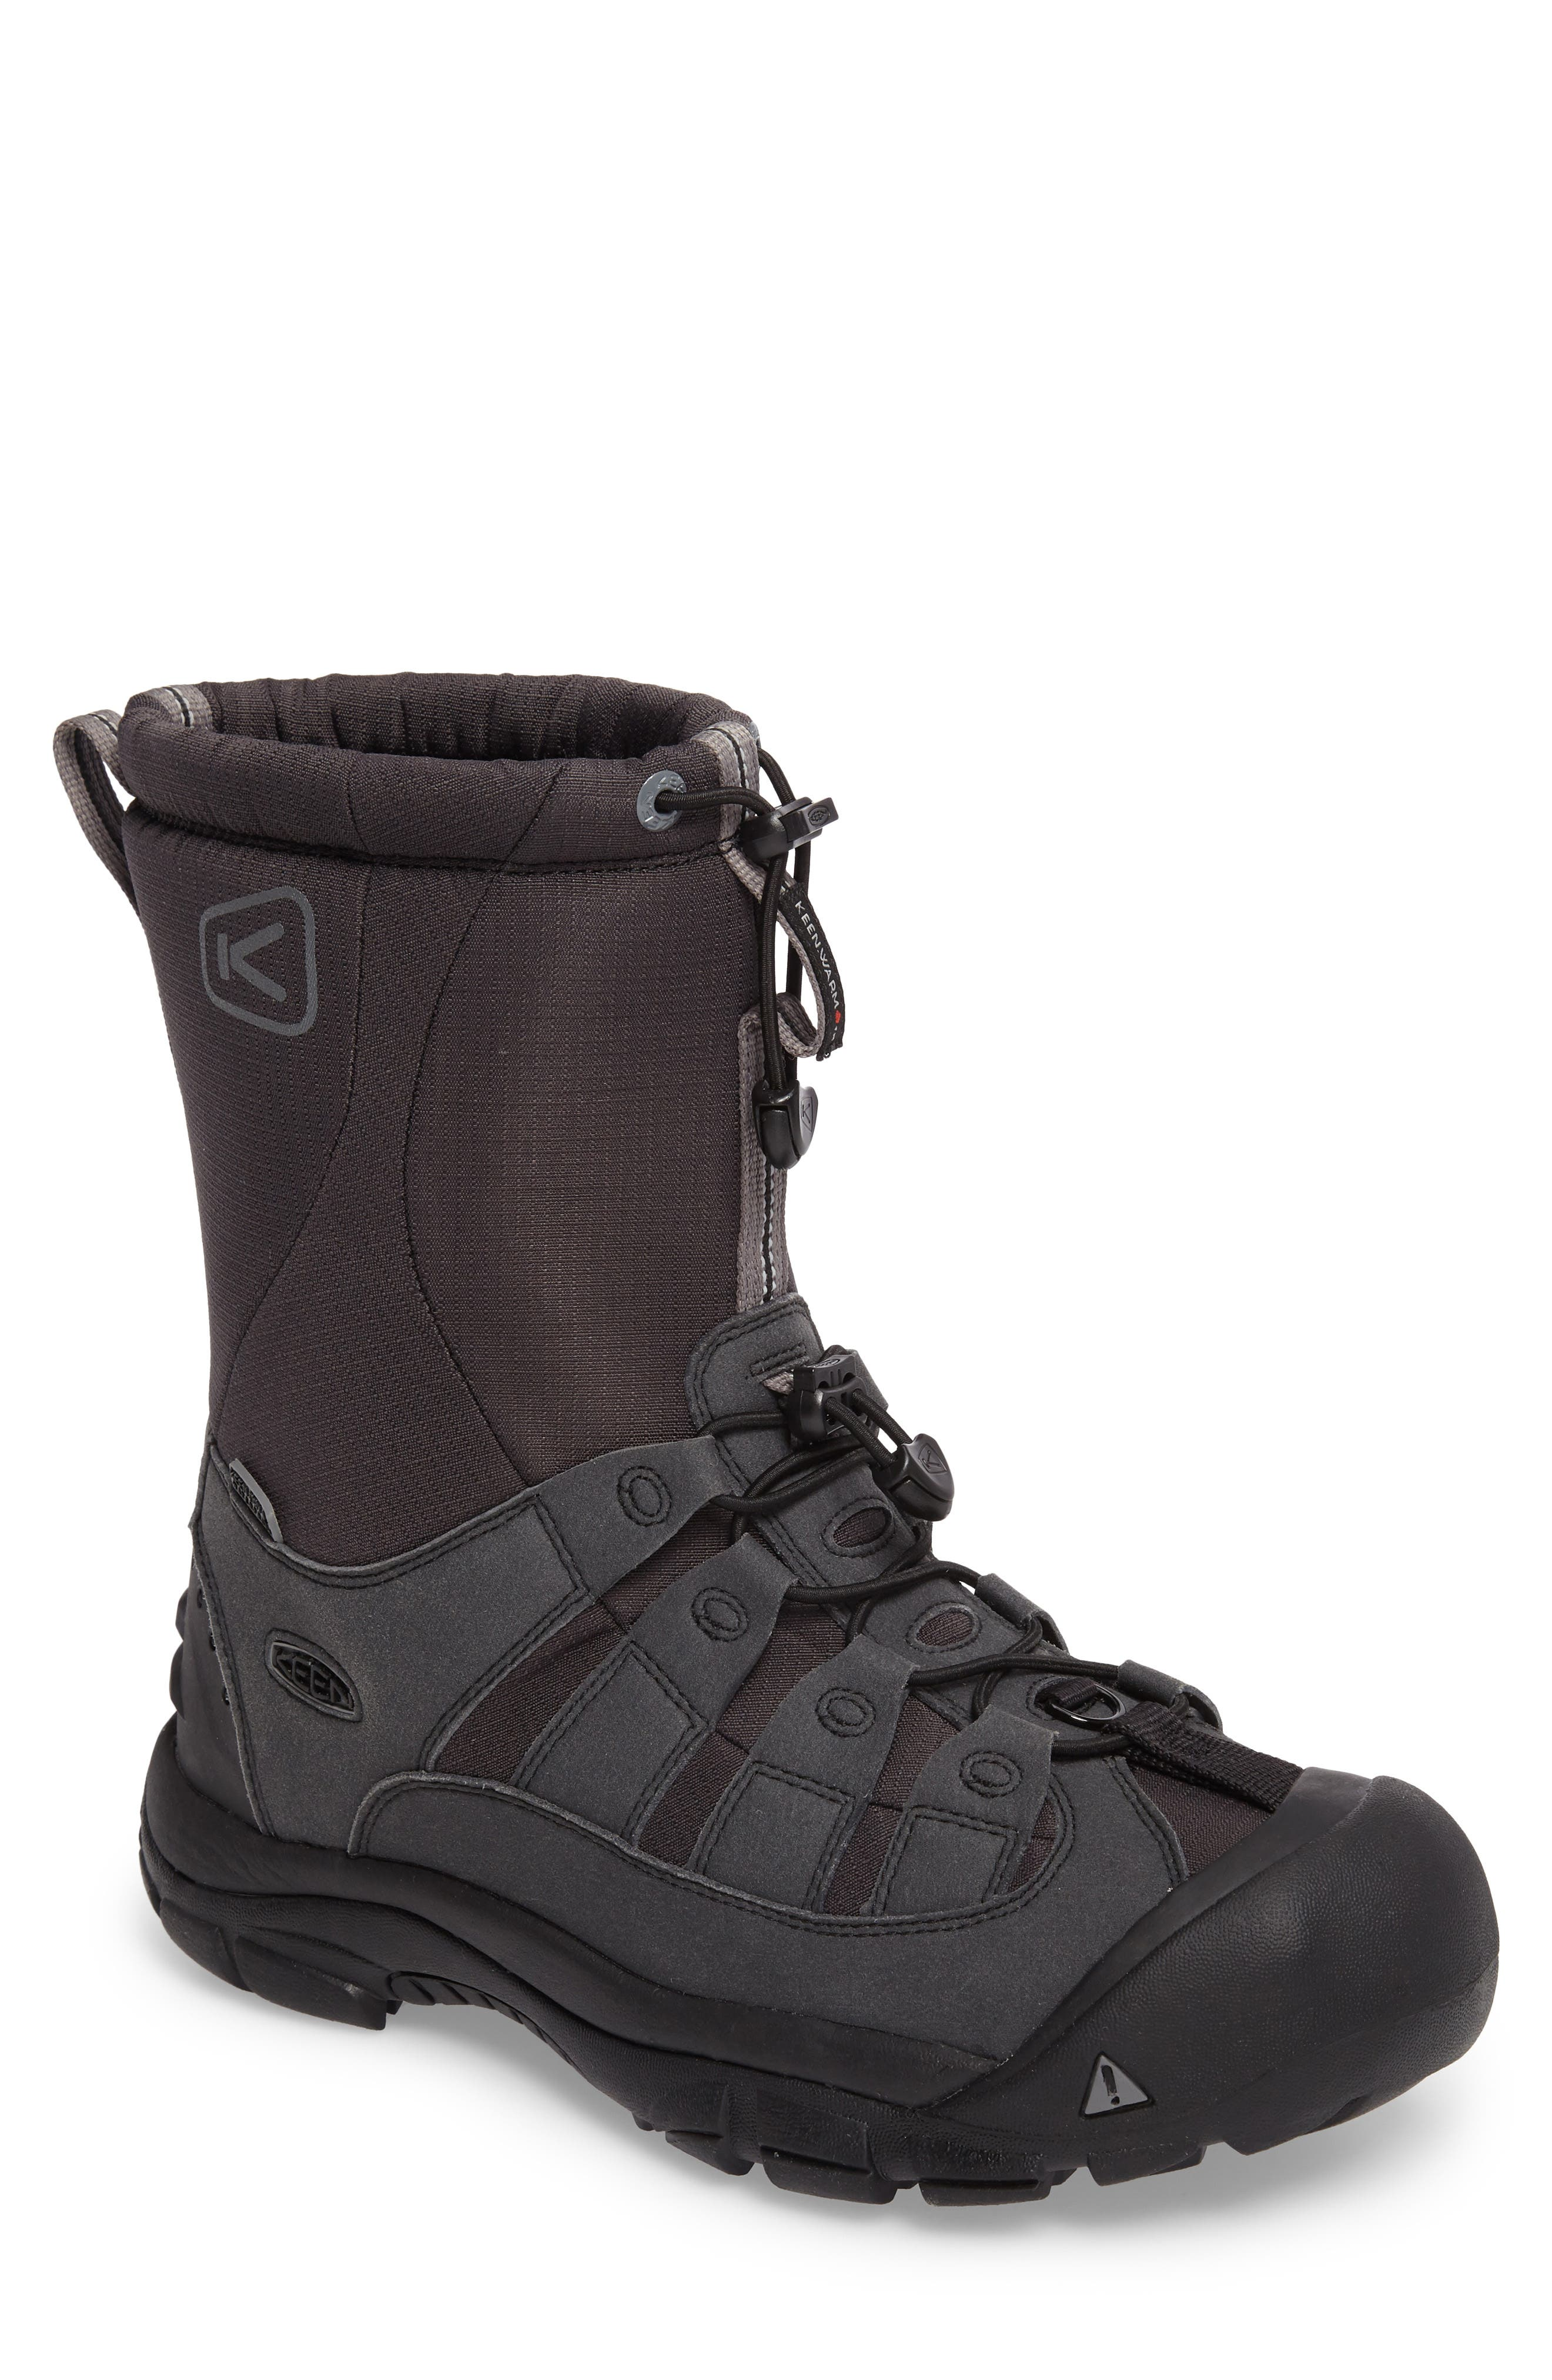 Winterport II Waterproof Insulated Snow Boot,                             Main thumbnail 1, color,                             001